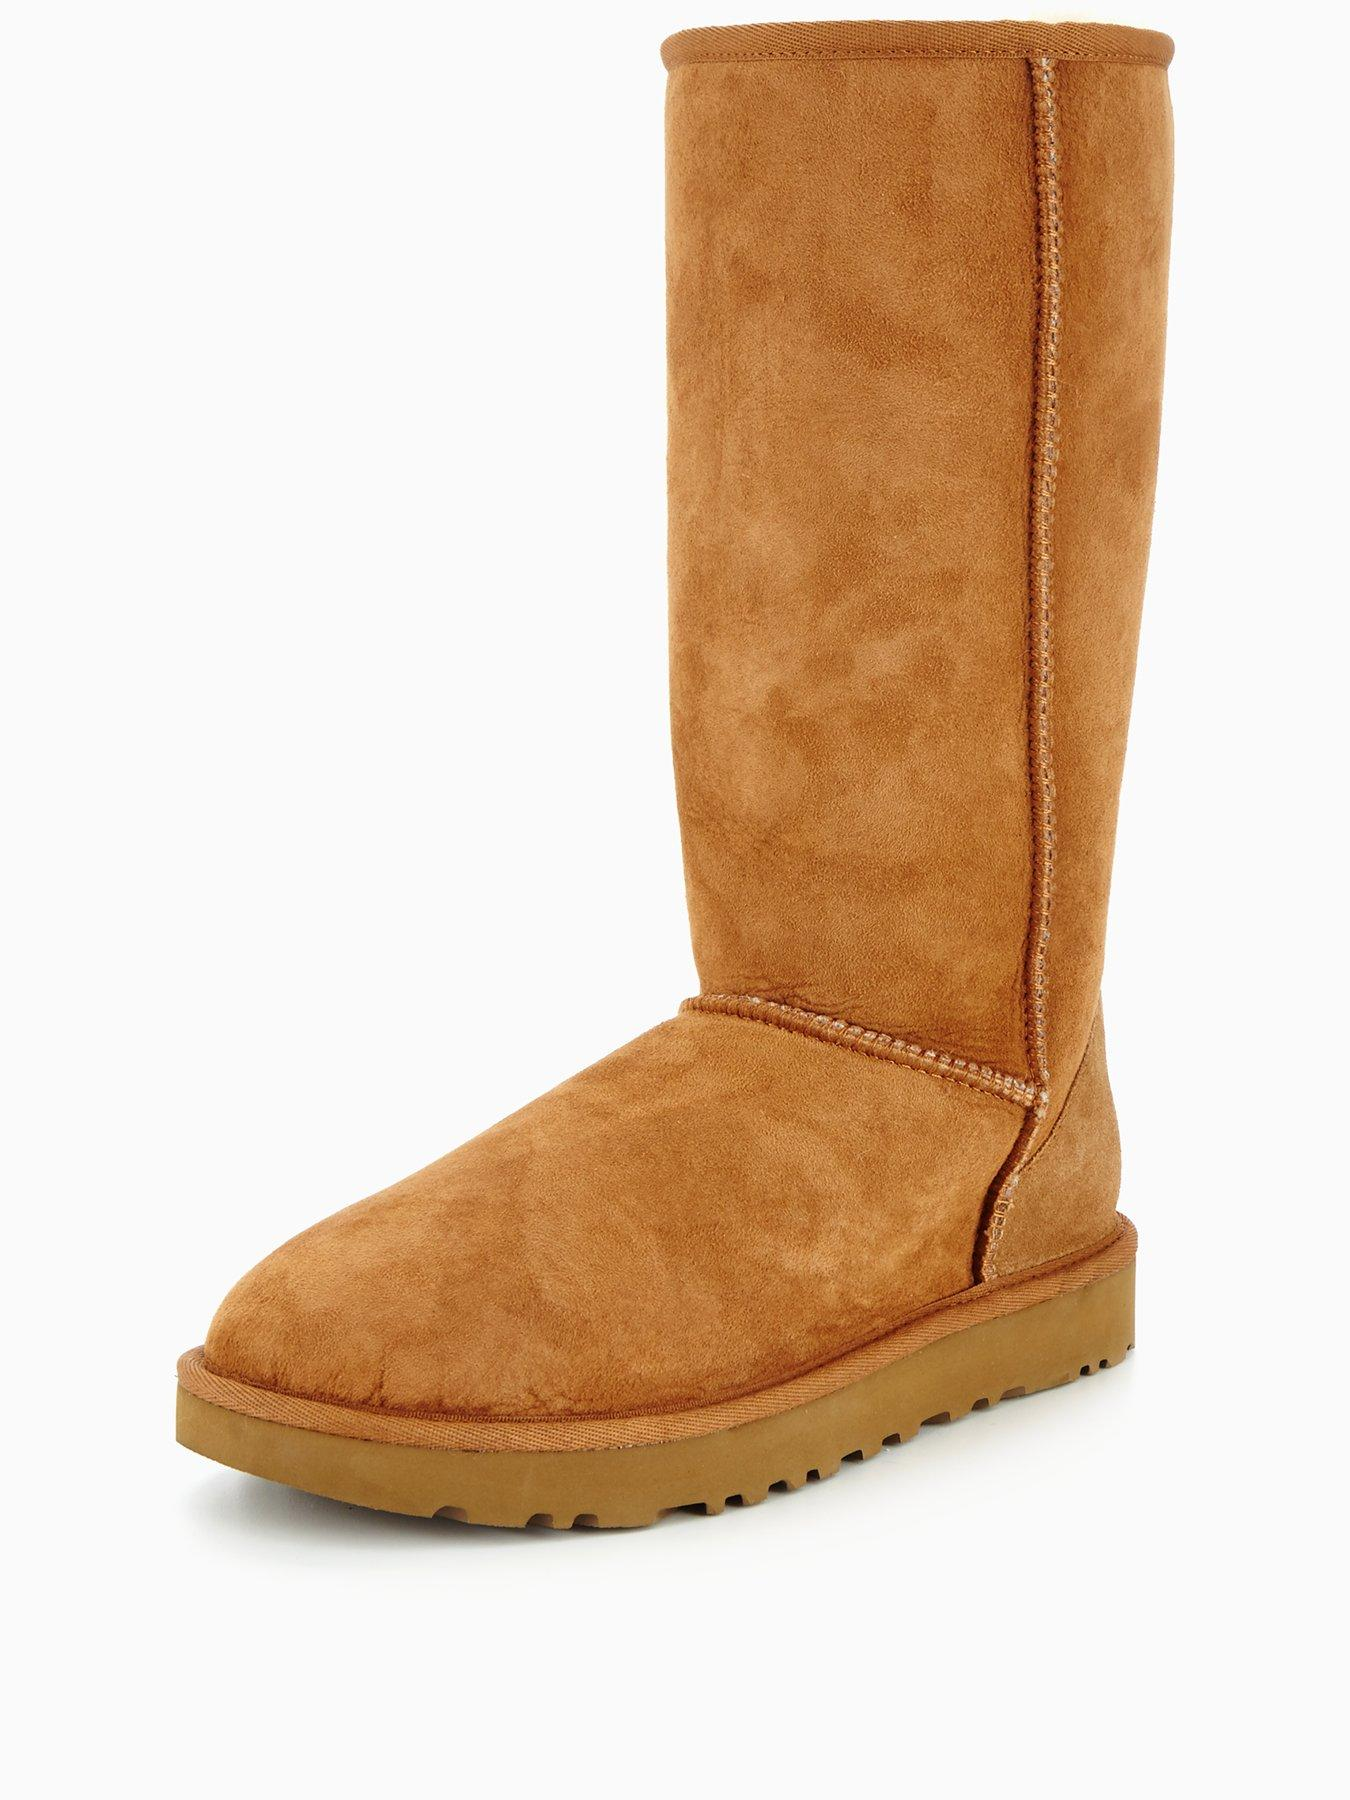 UGG Classic II Tall Boot - Tan